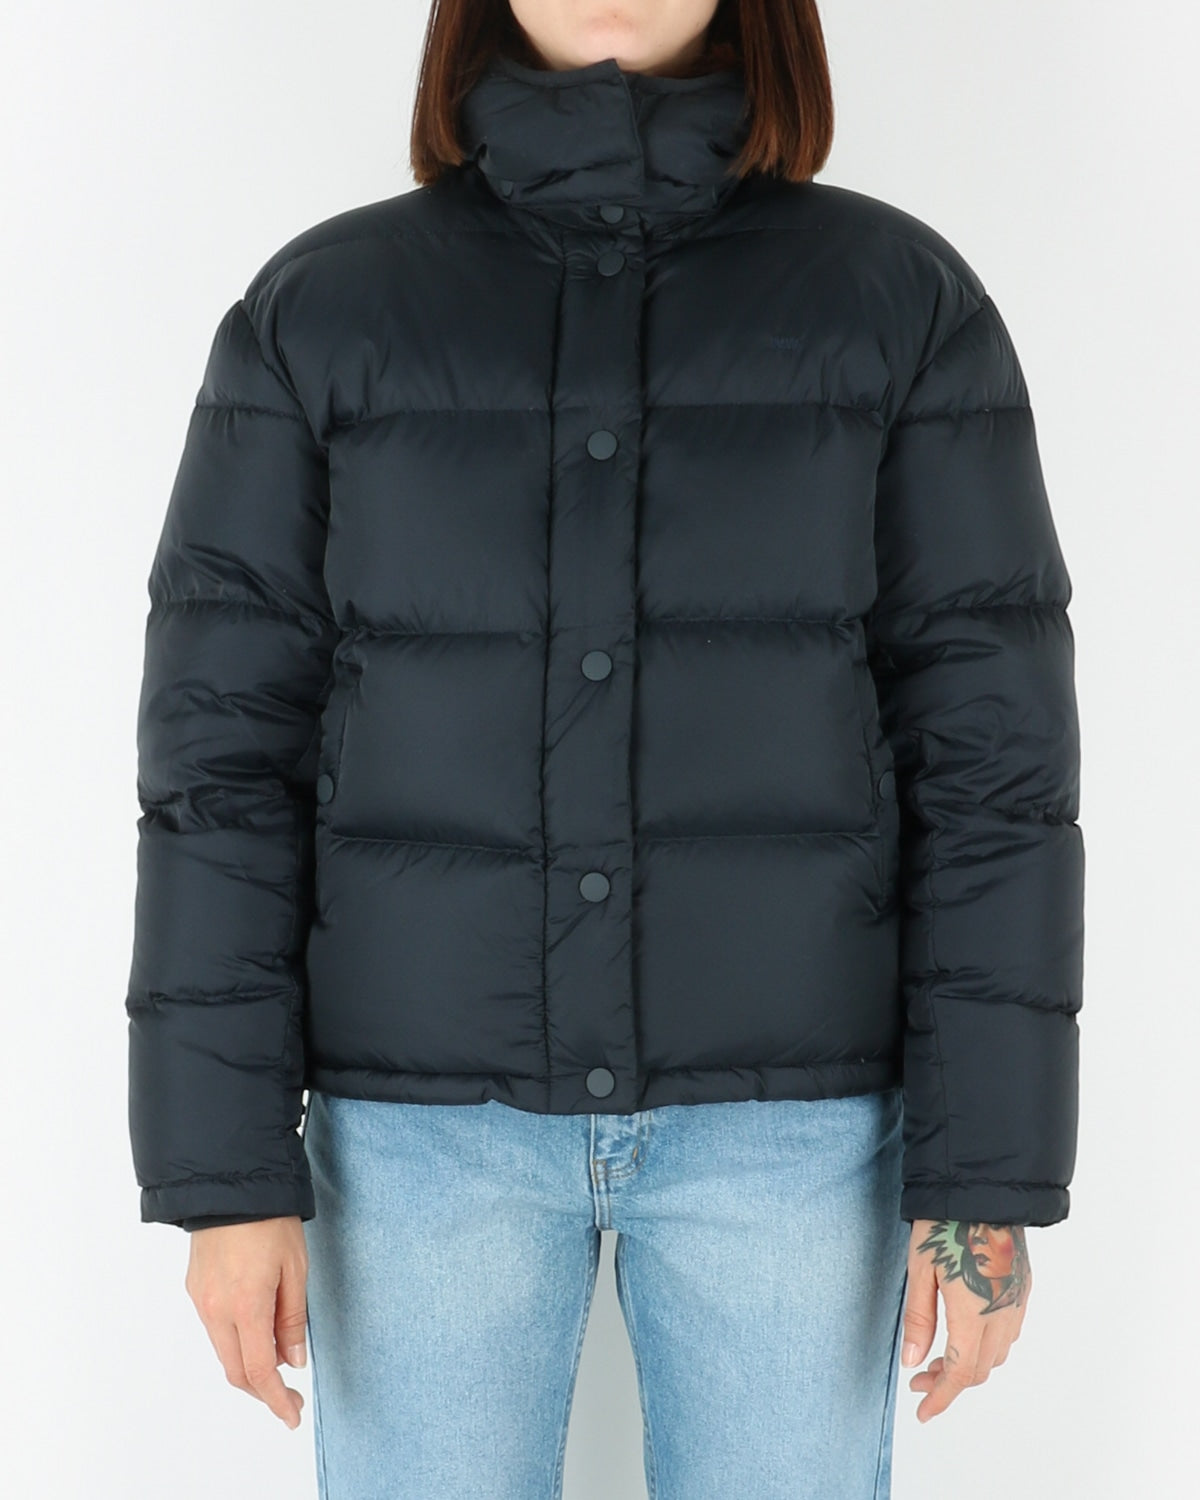 wood wood_alyssa_jacket_navy_view_1_4